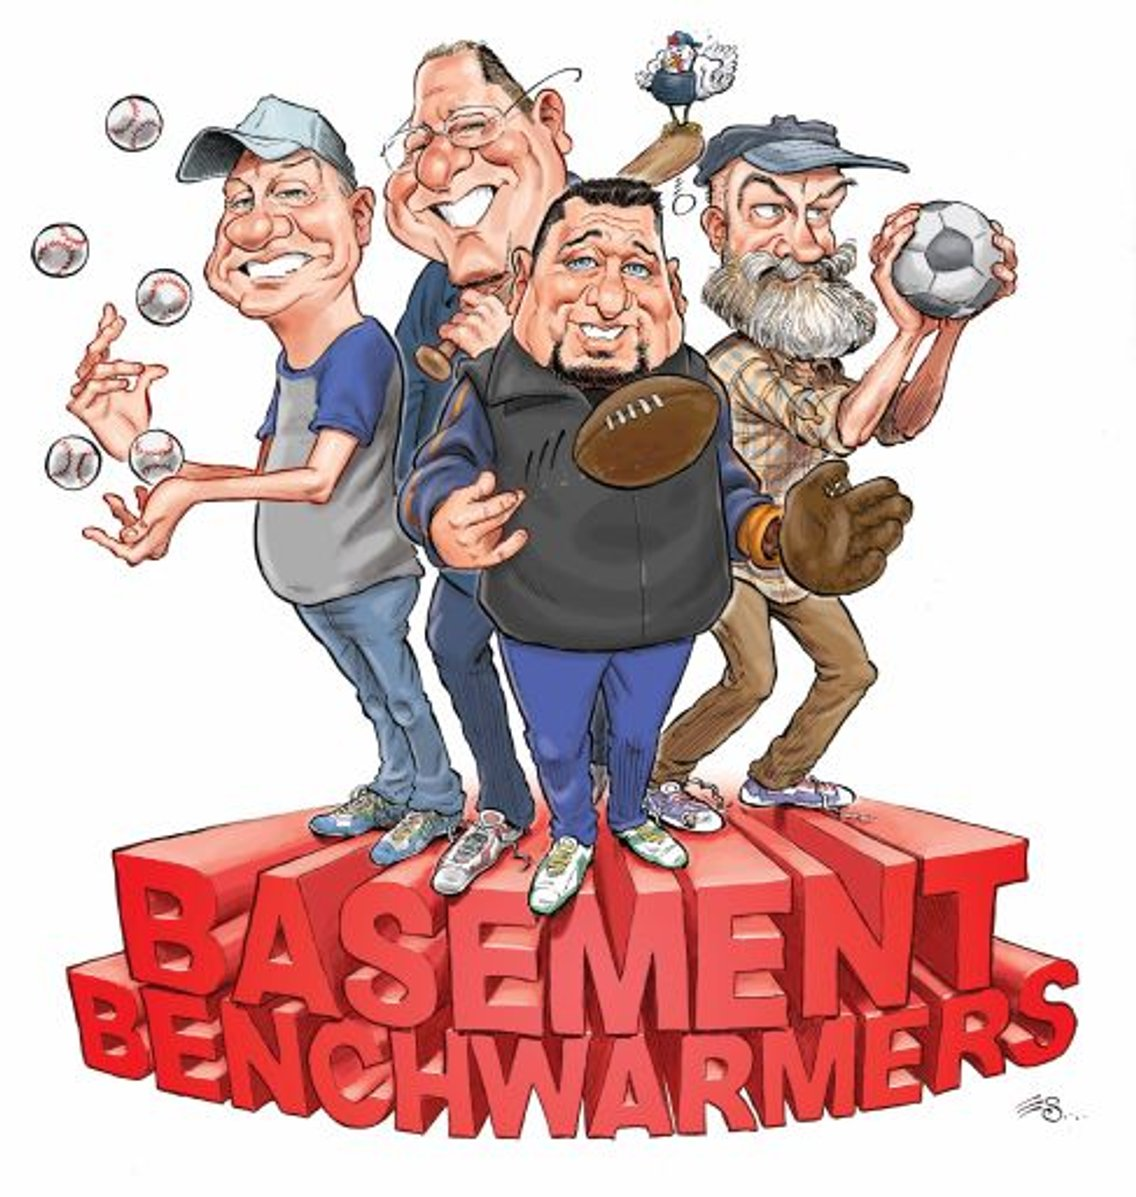 Basement Benchwarmers - Cover Image